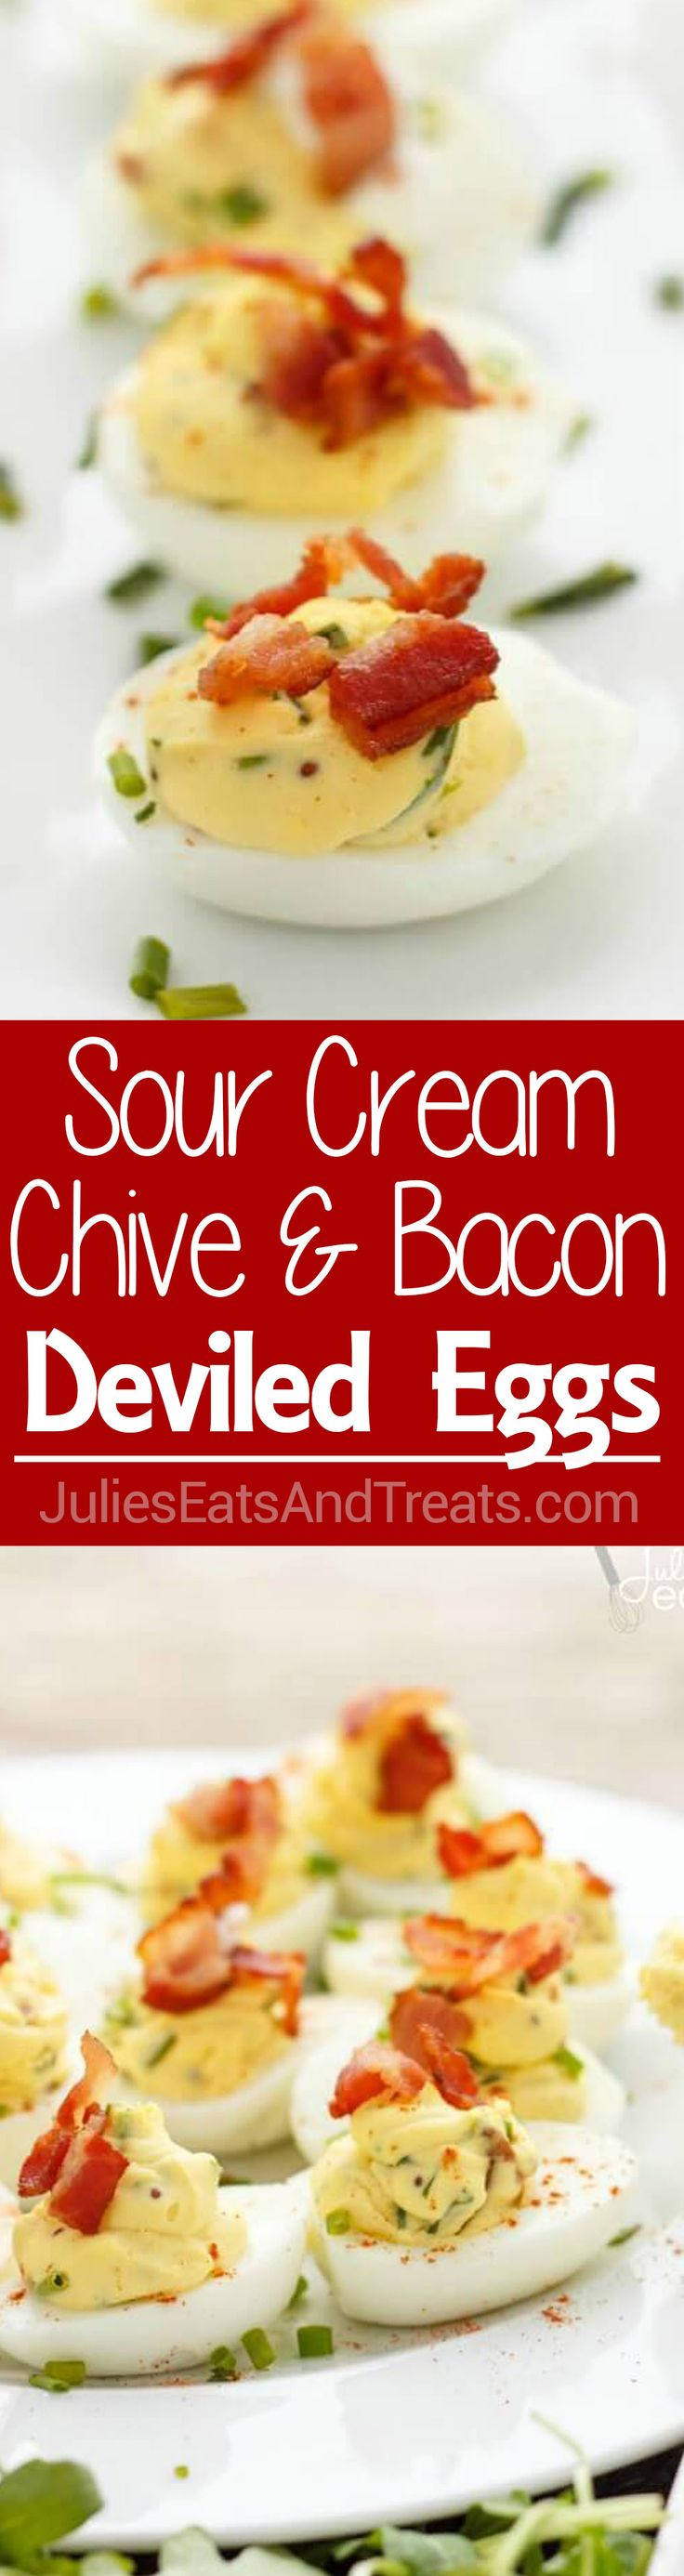 Sour Cream, Chive, and Bacon Deviled Eggs Recipe ~ Creamy Deviled Eggs Loaded with Sour Cream, Chive and Bacon! Perfect Side Dish for the Holiday! on MyRecipeMagic.com